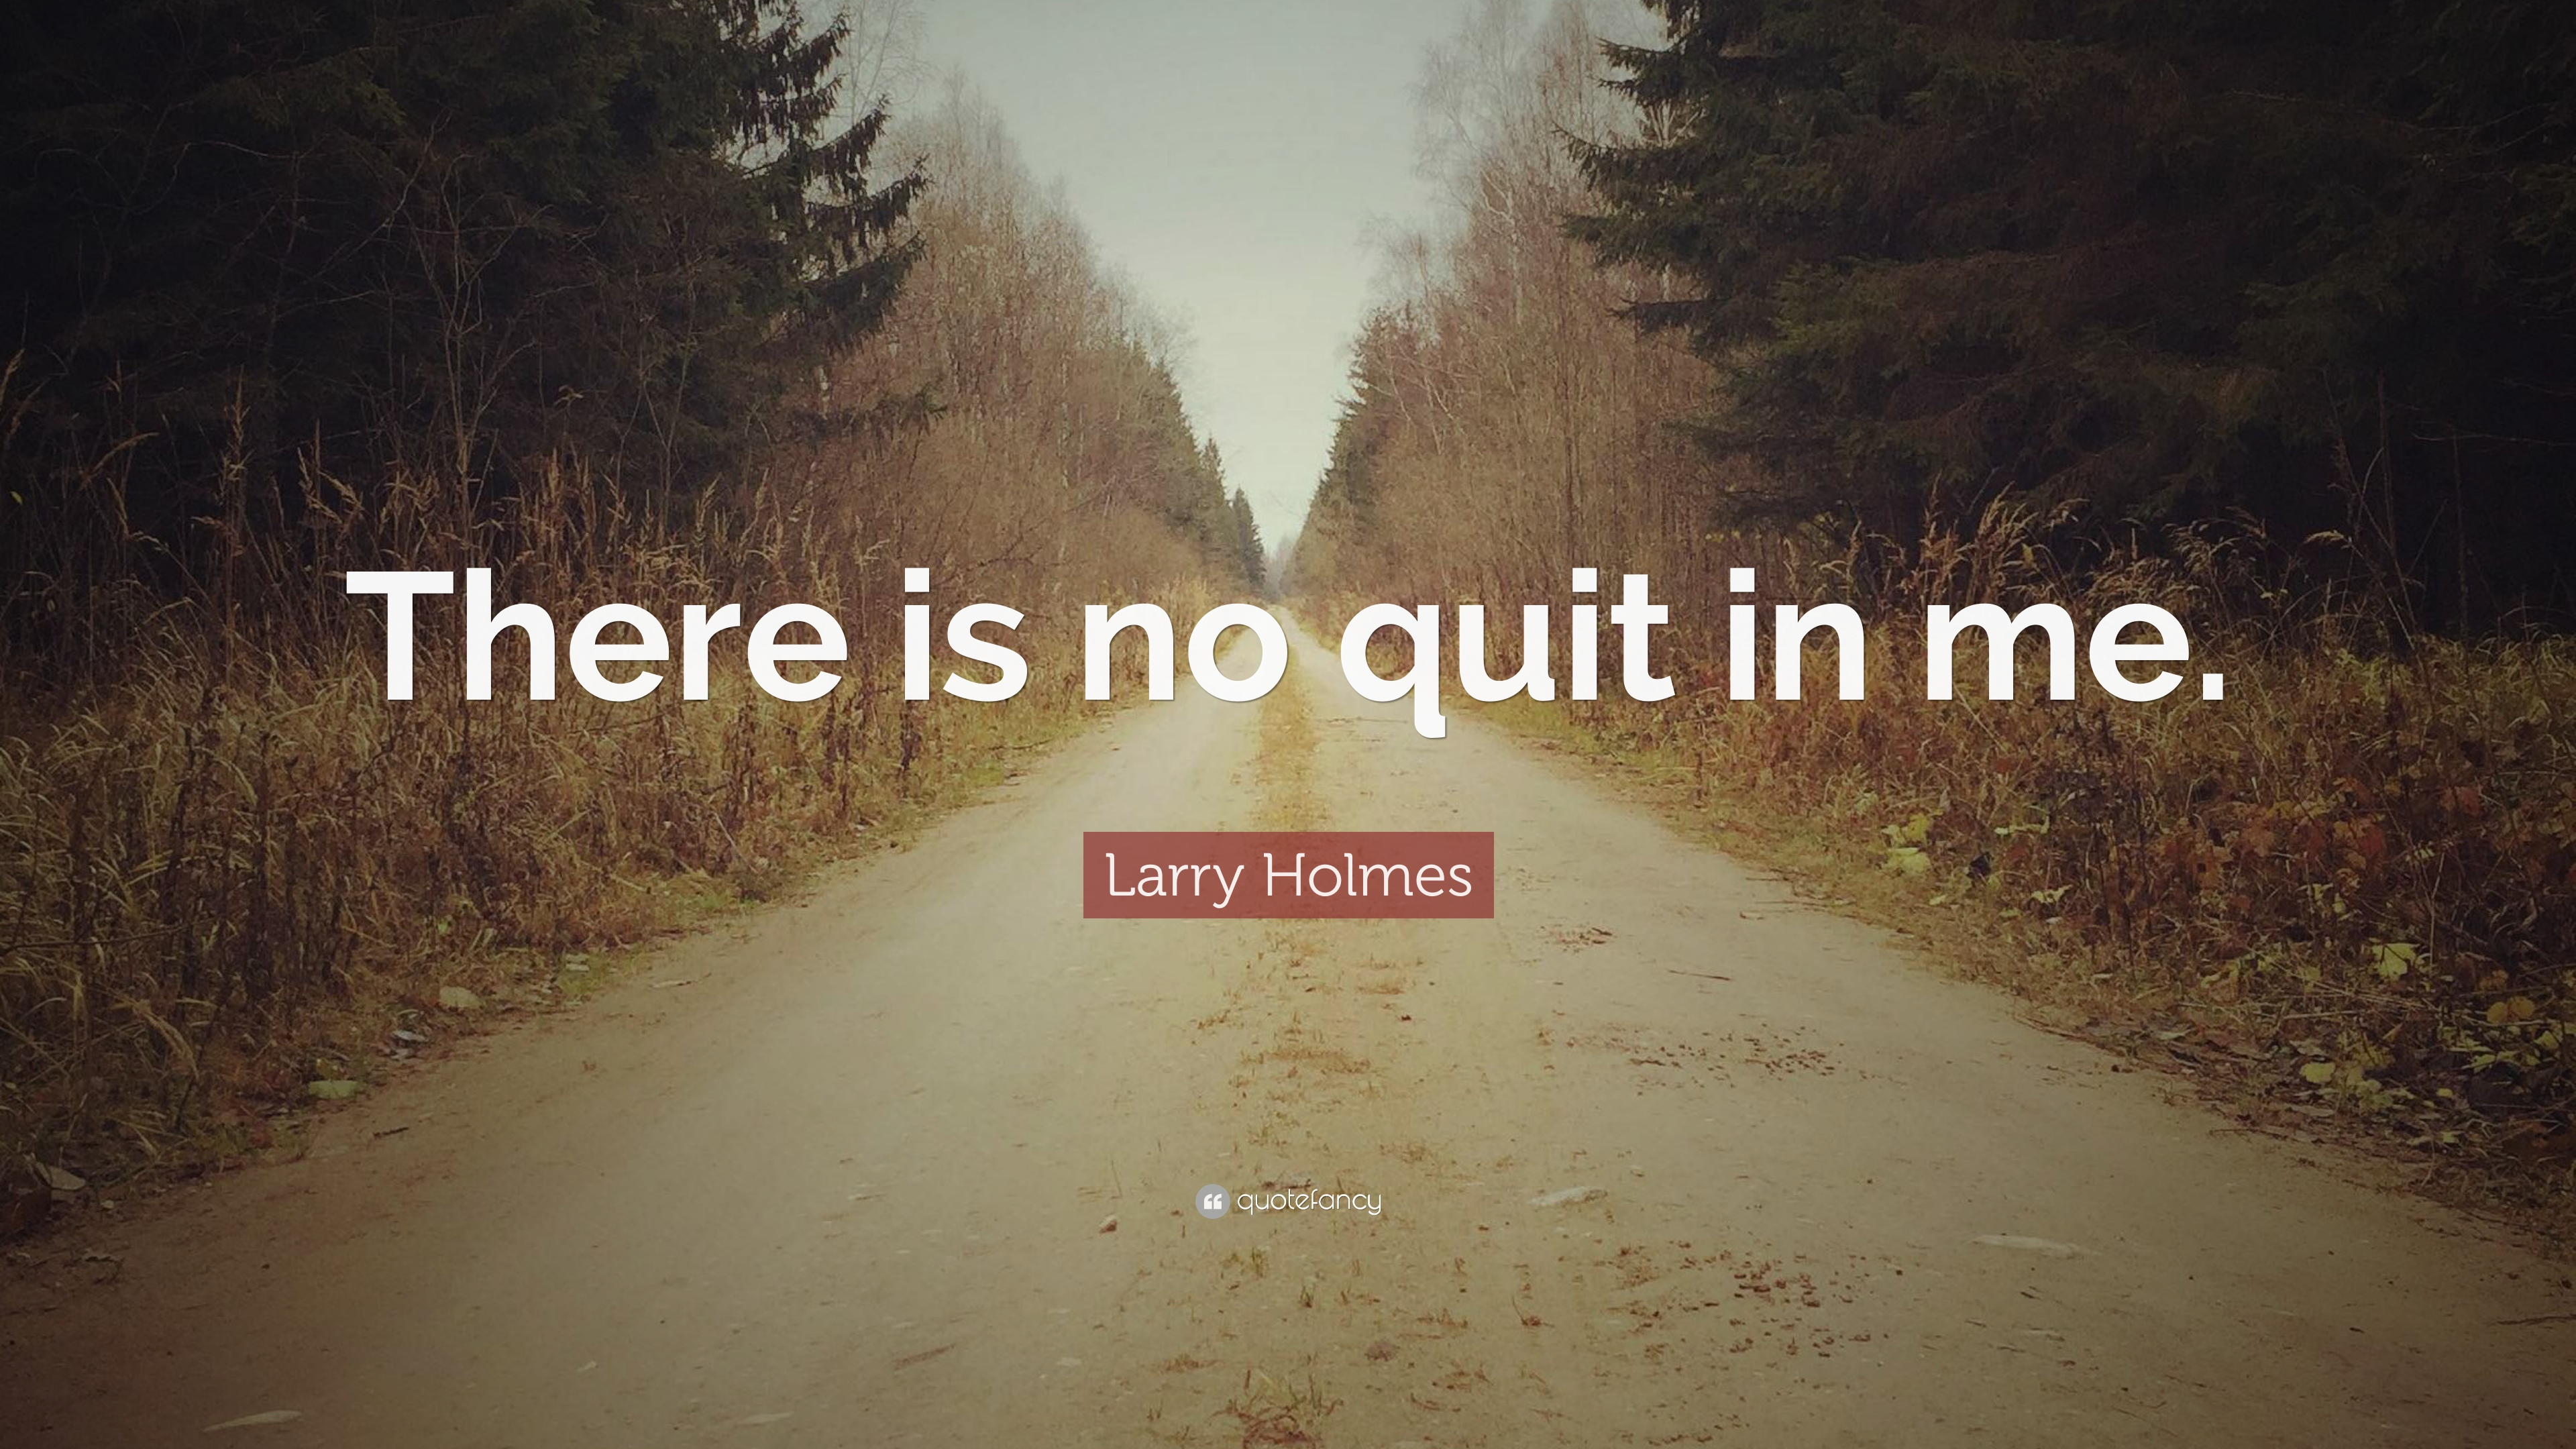 I Quit Quotes Wallpaper Quitting Quotes 40 Wallpapers Quotefancy